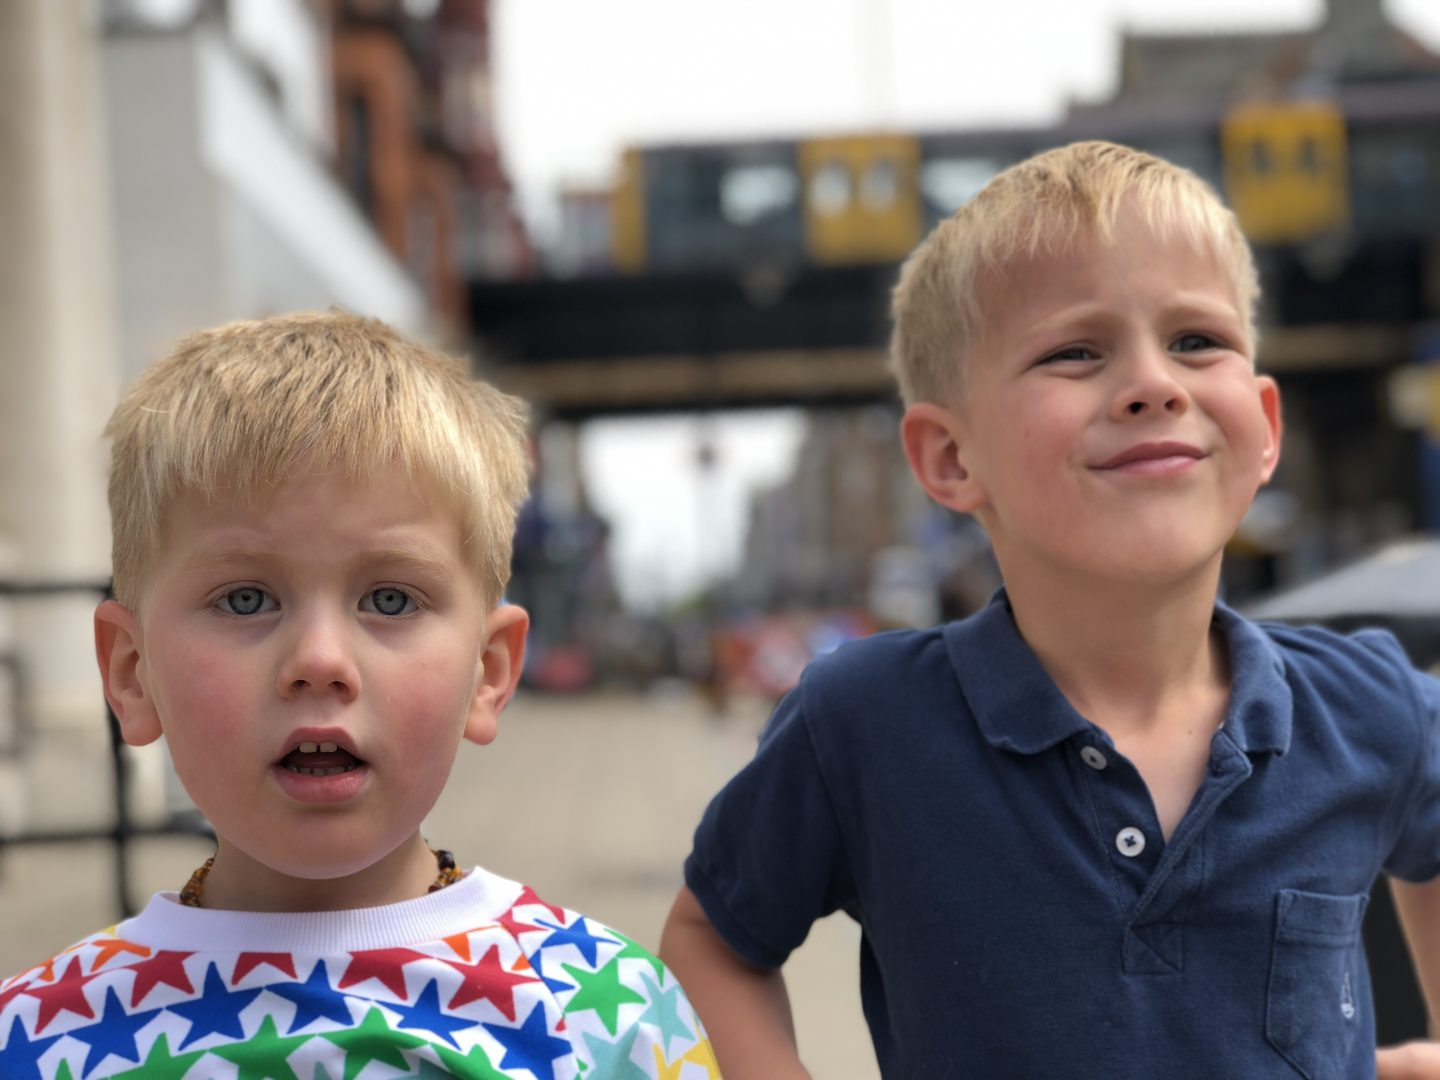 A family day out in South Shields with Tyne and Wear Metro